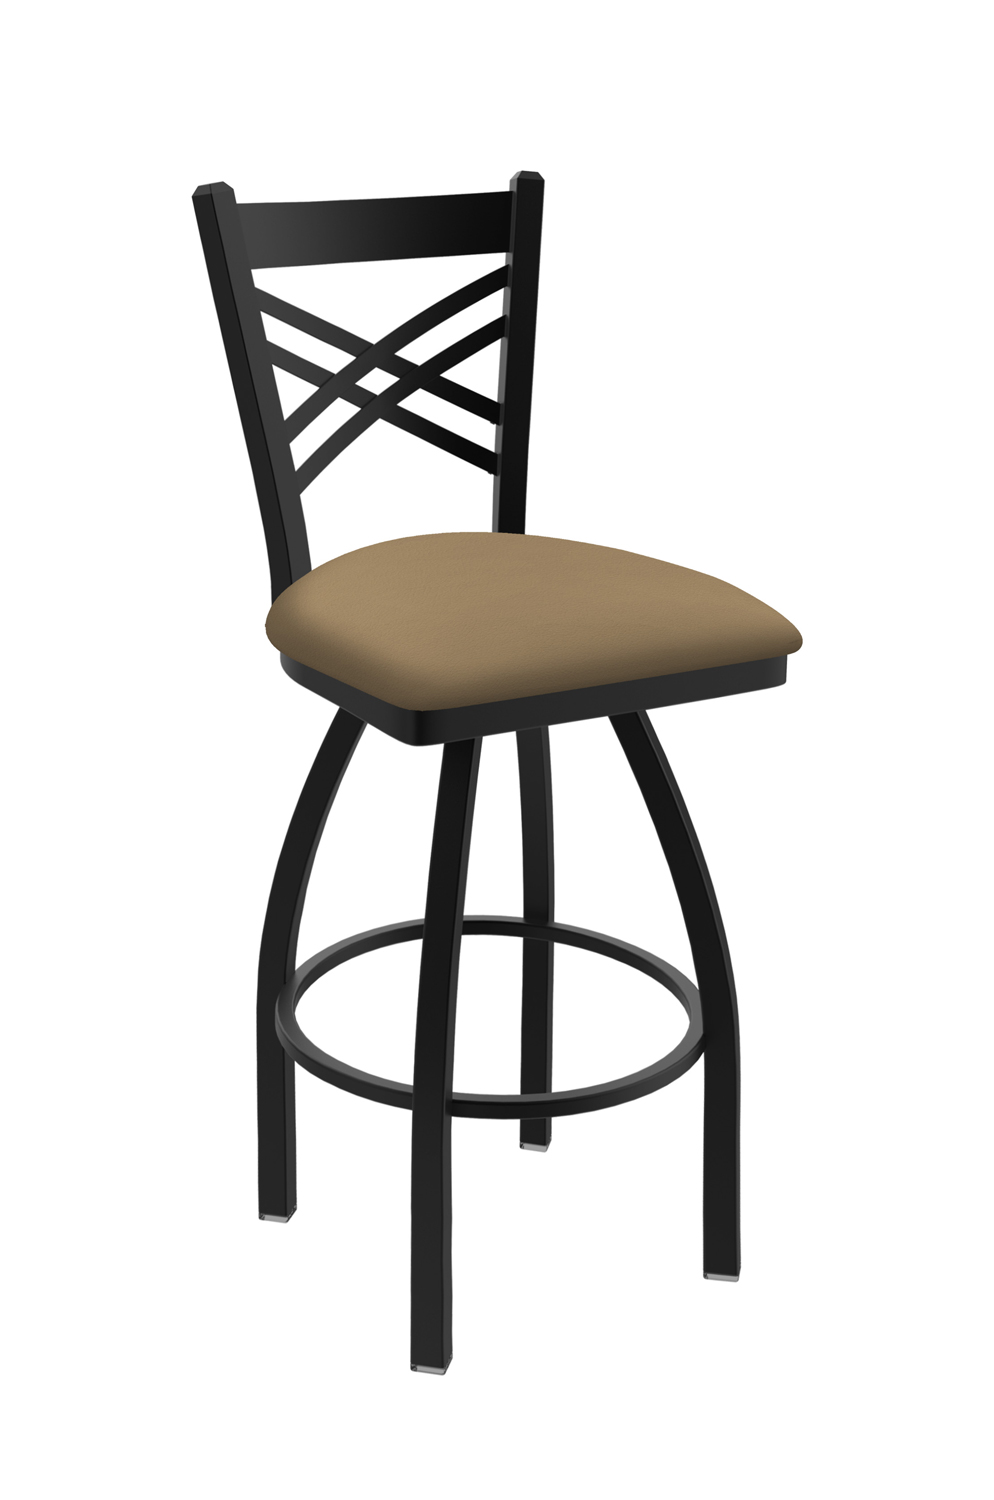 Remarkable Catalina Swivel Stool 820 Machost Co Dining Chair Design Ideas Machostcouk